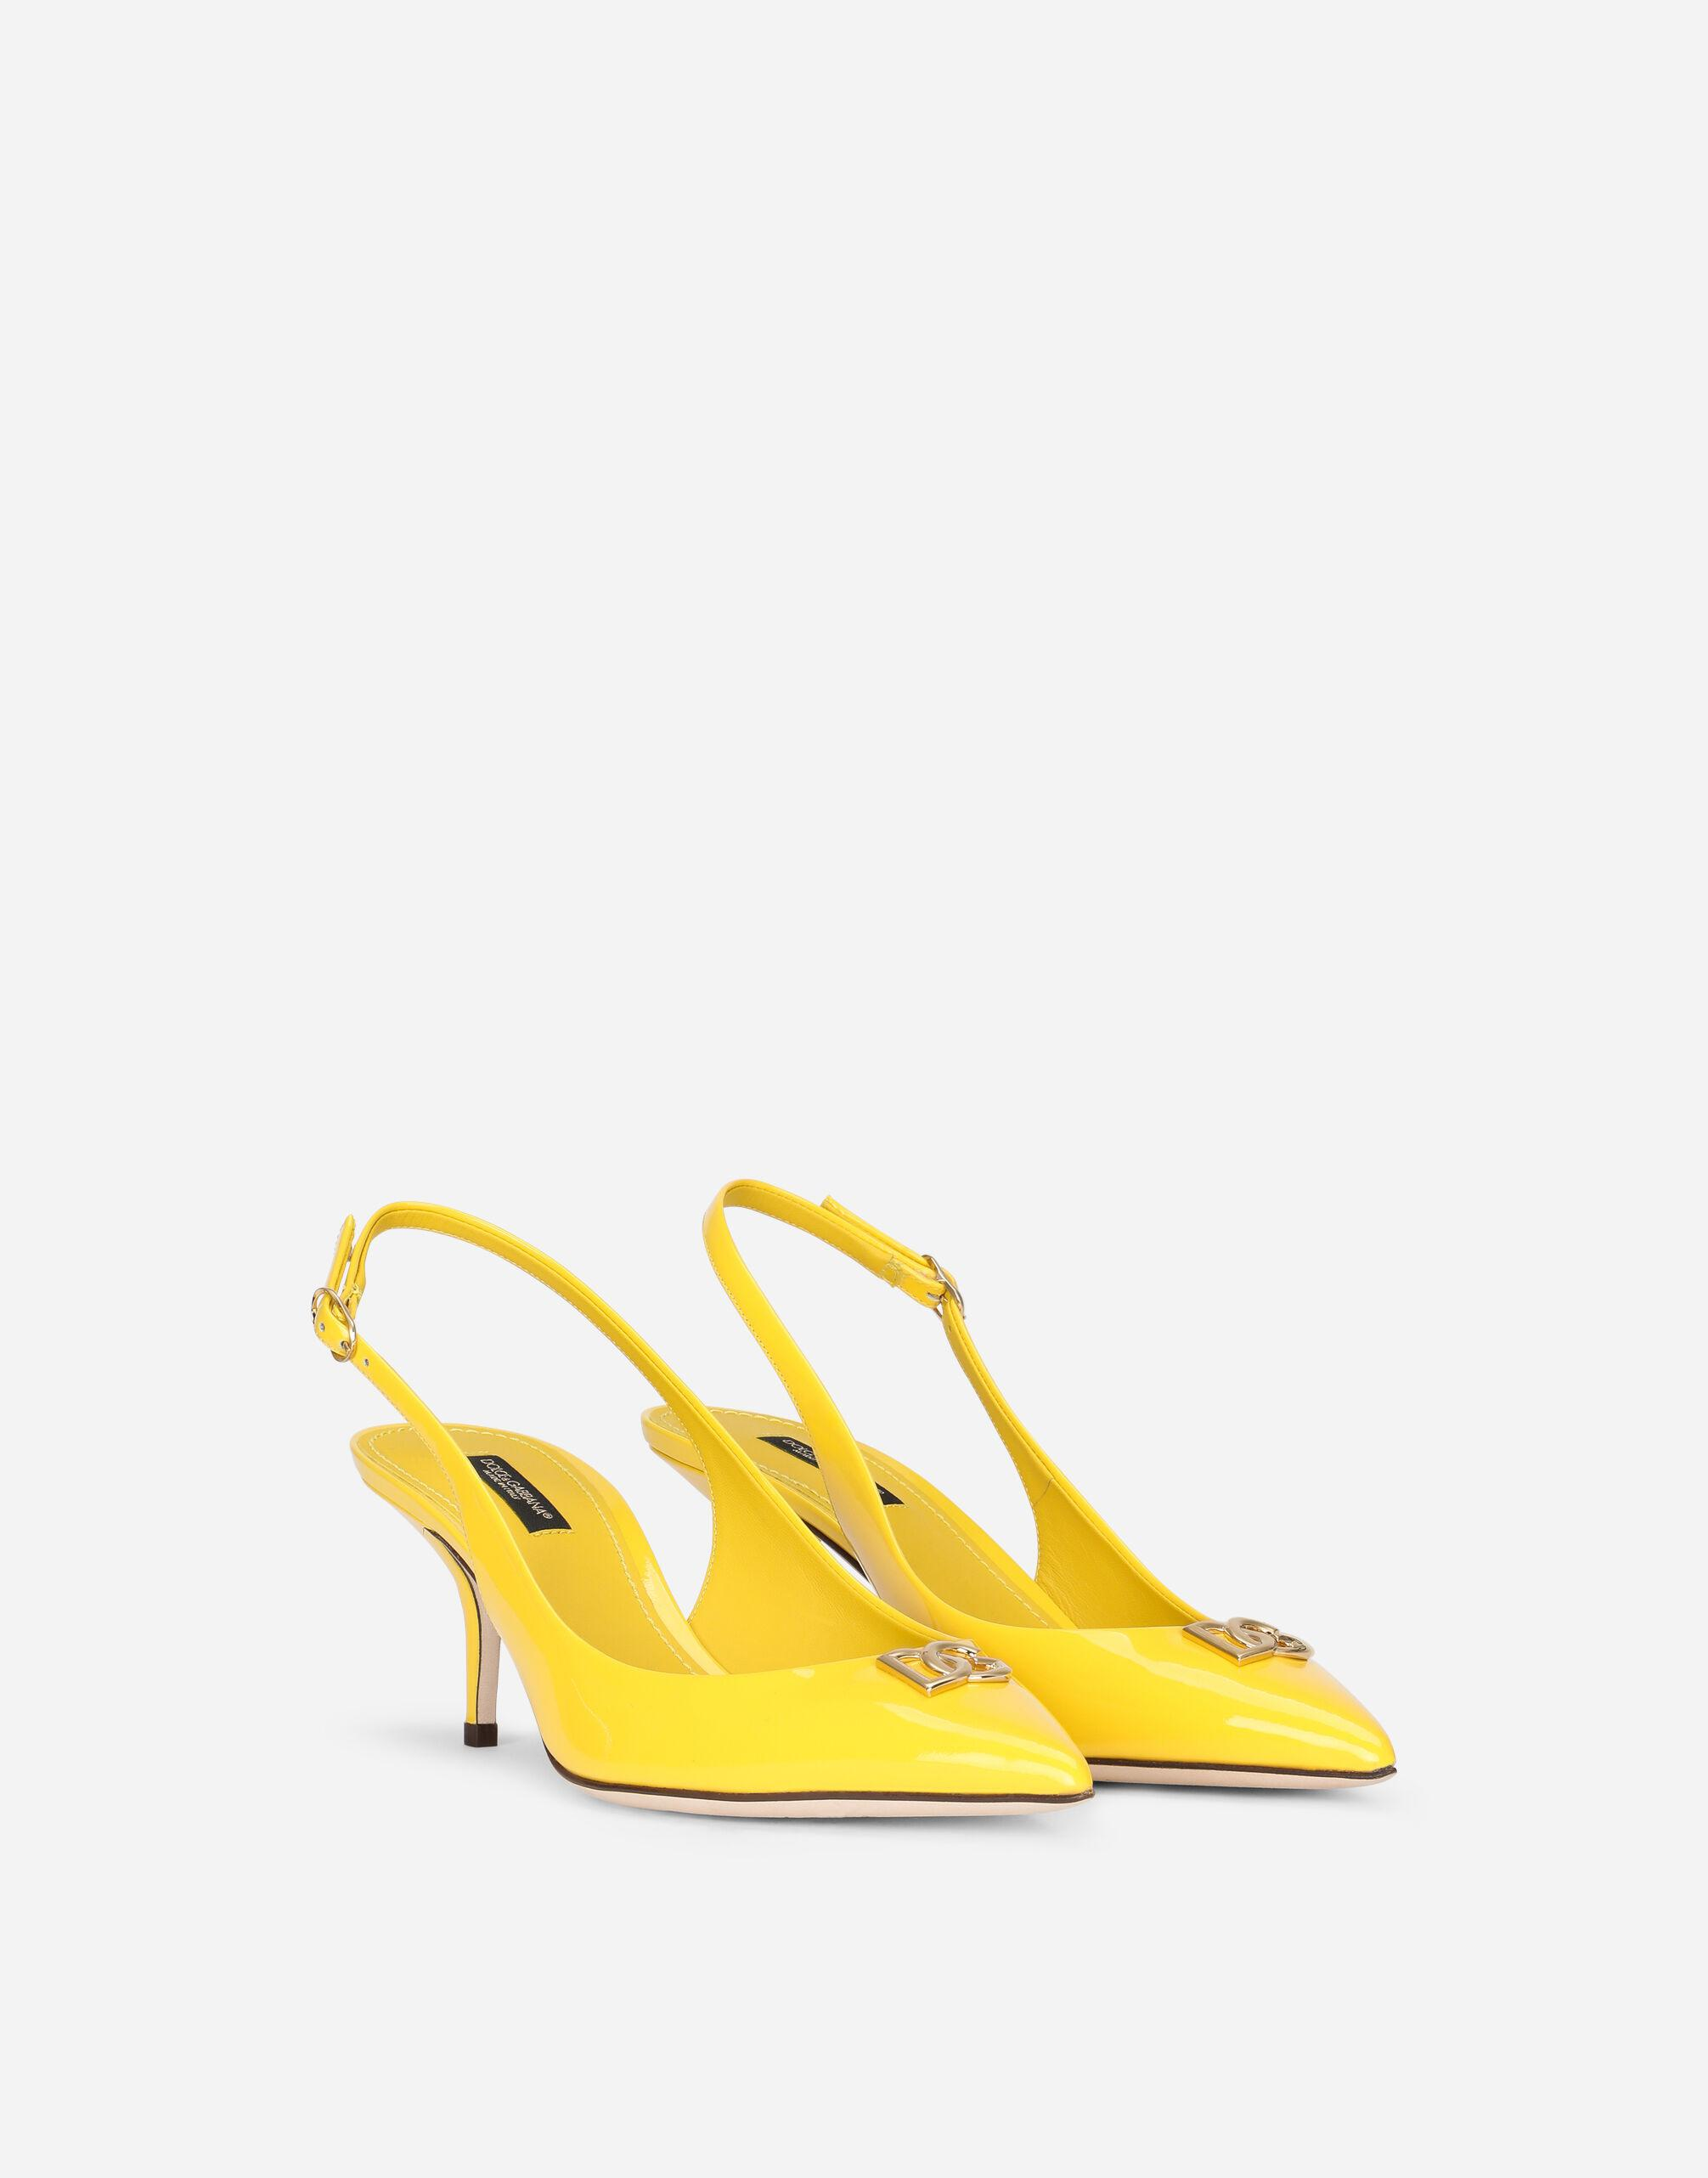 Patent leather slingbacks with DG logo 1